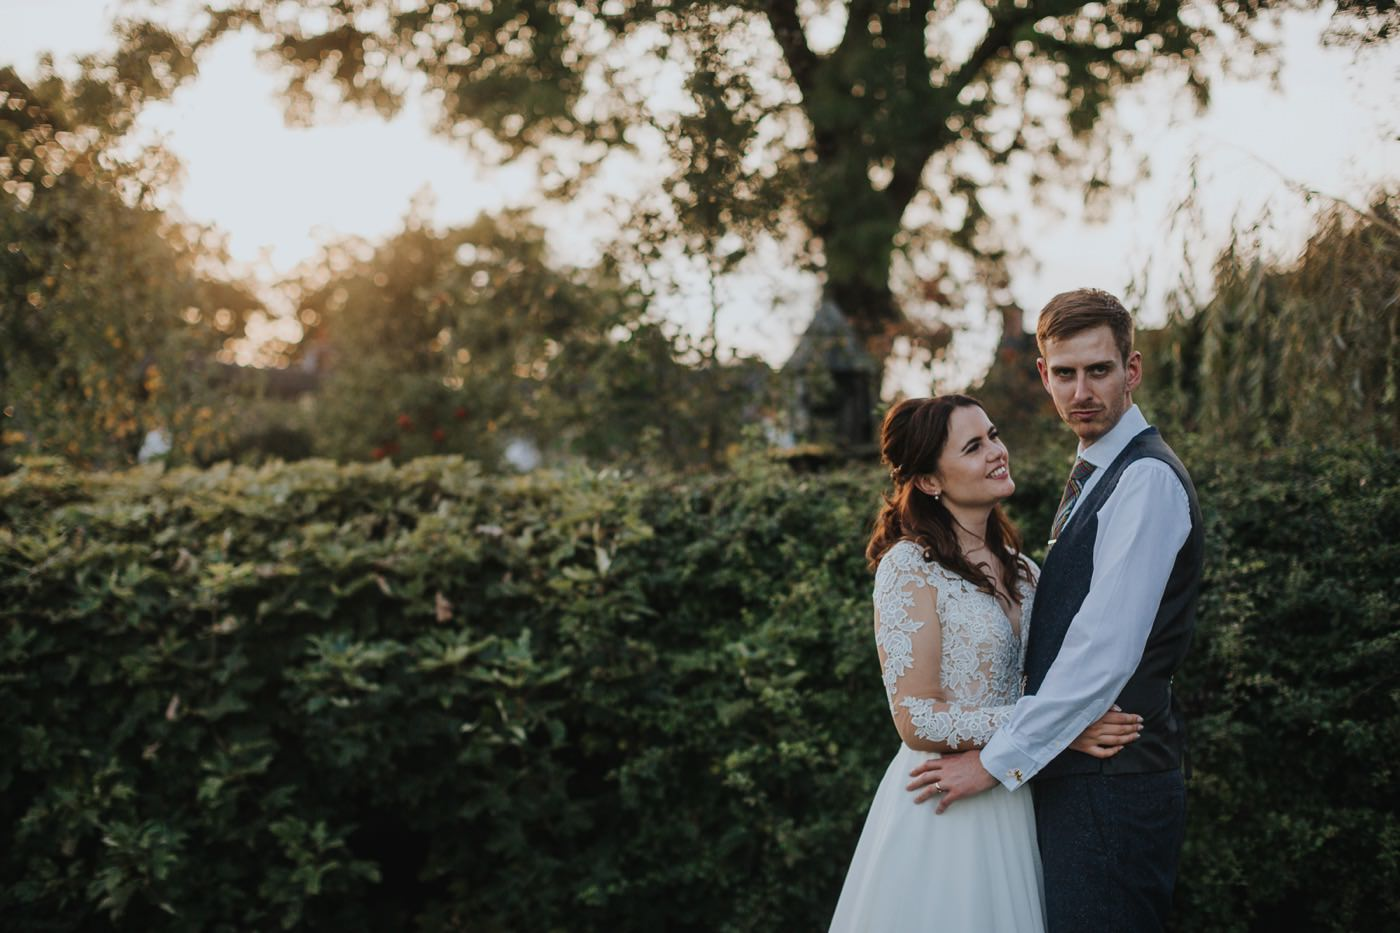 Steve & Tiffany | Bradgate Park wedding 85